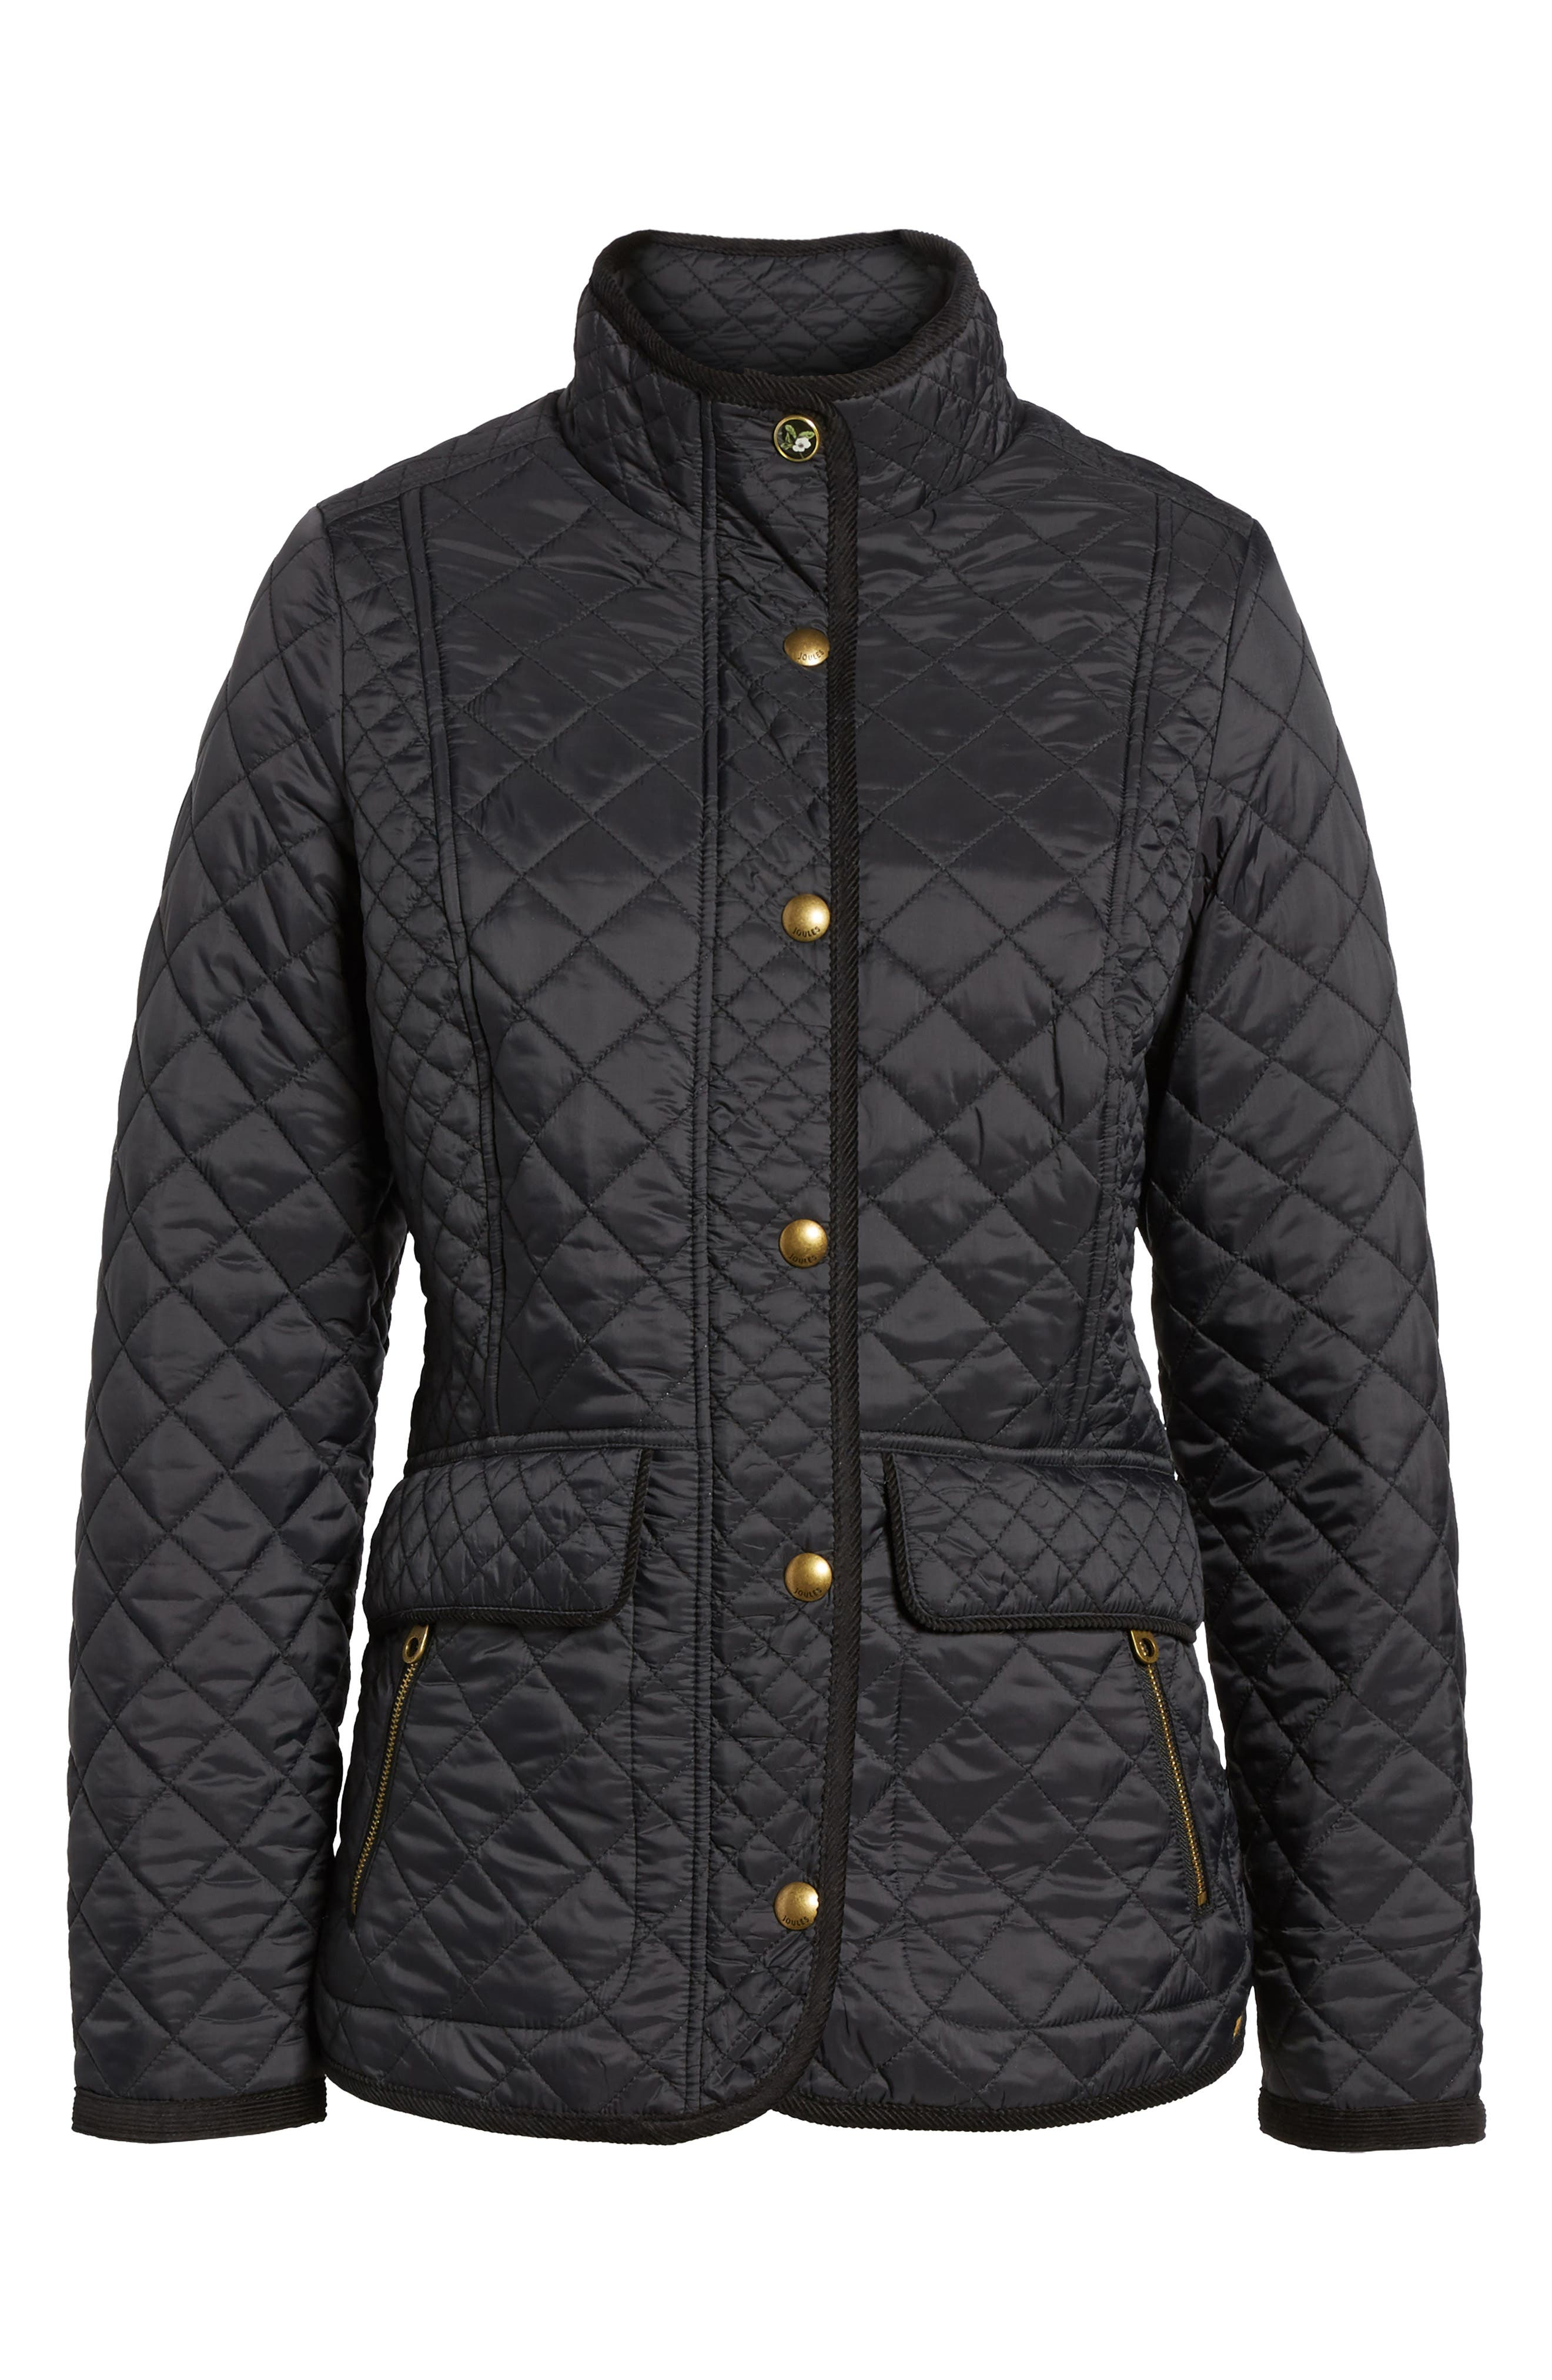 Warm Welcome Quilted Jacket,                             Main thumbnail 1, color,                             Black